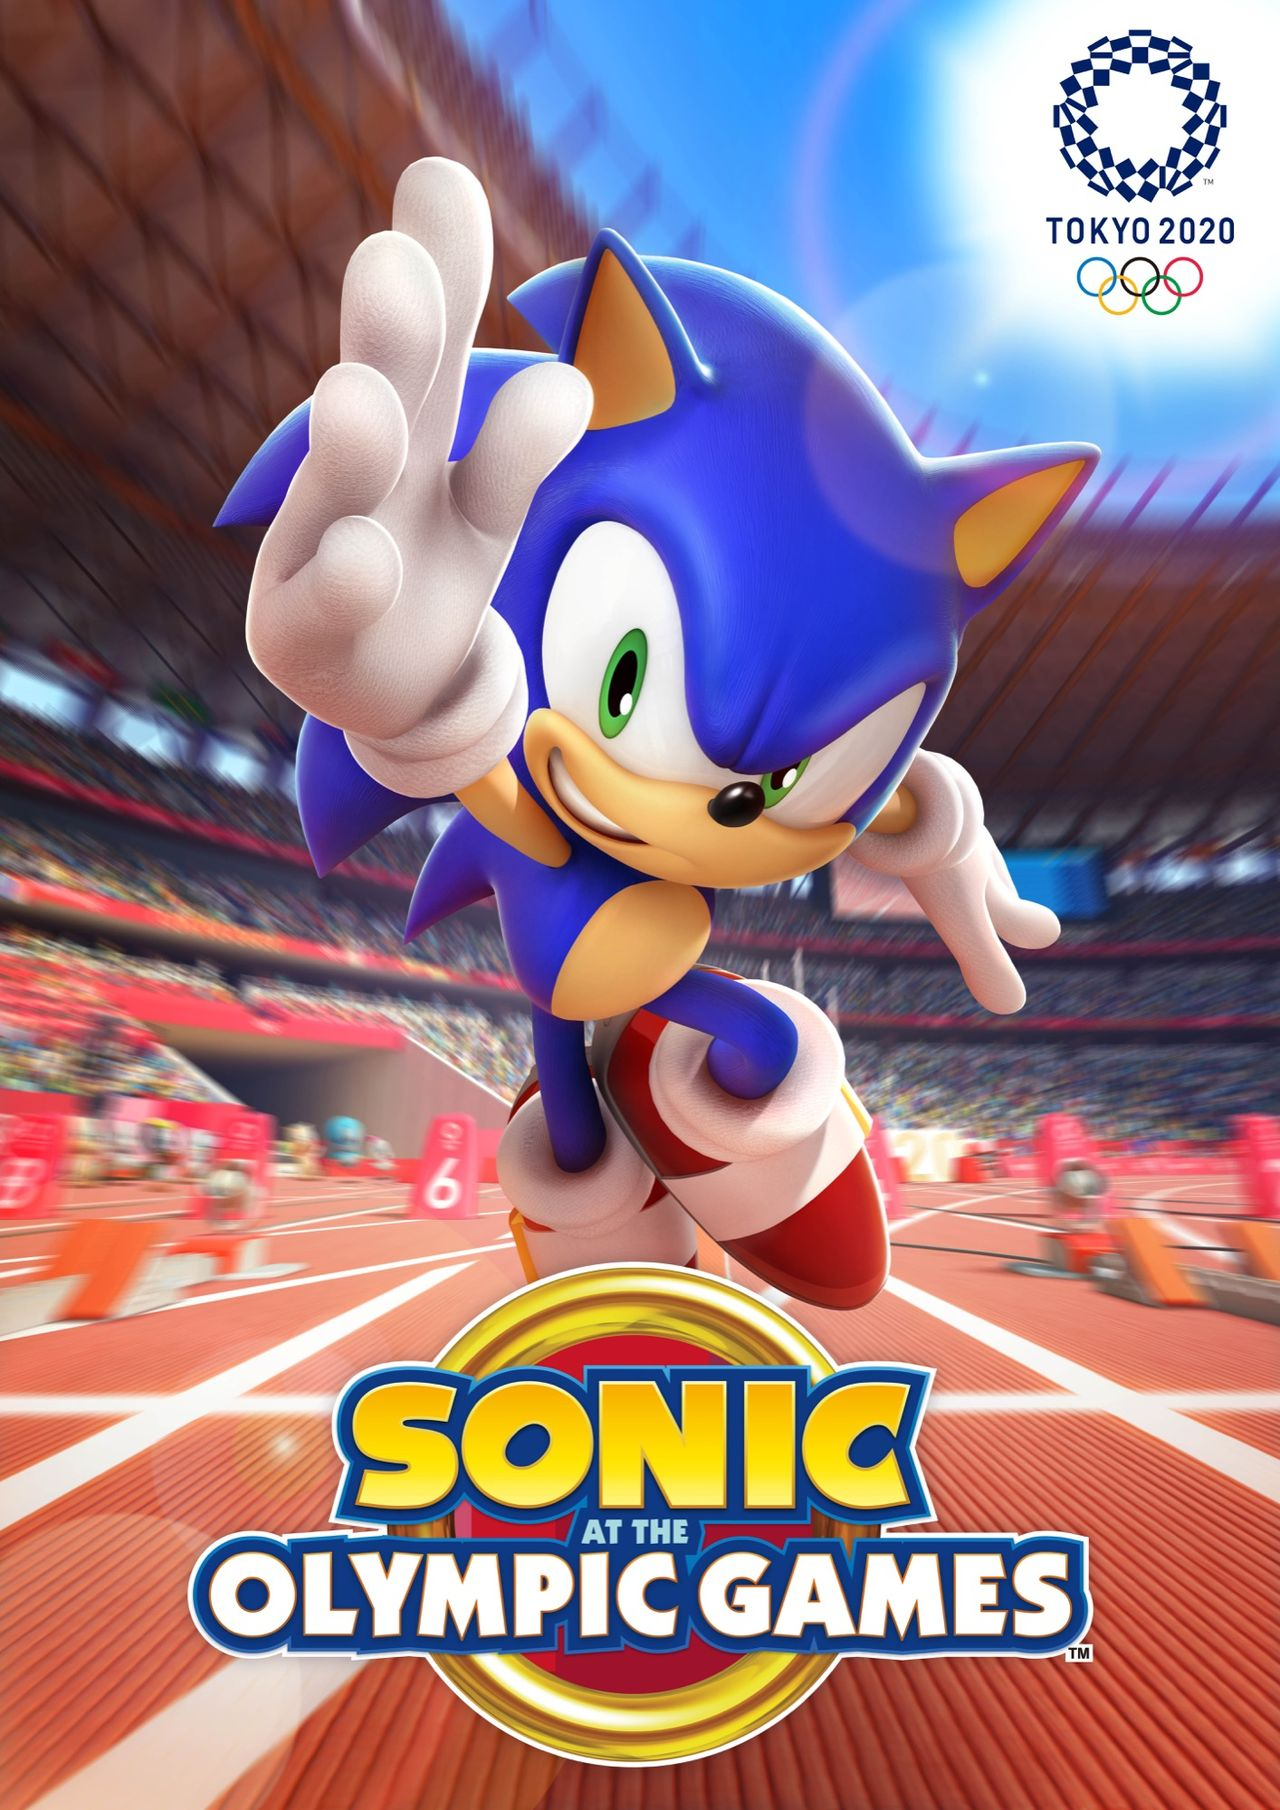 Kolla in Sonic at the Olympic Games – Tokyo 2020